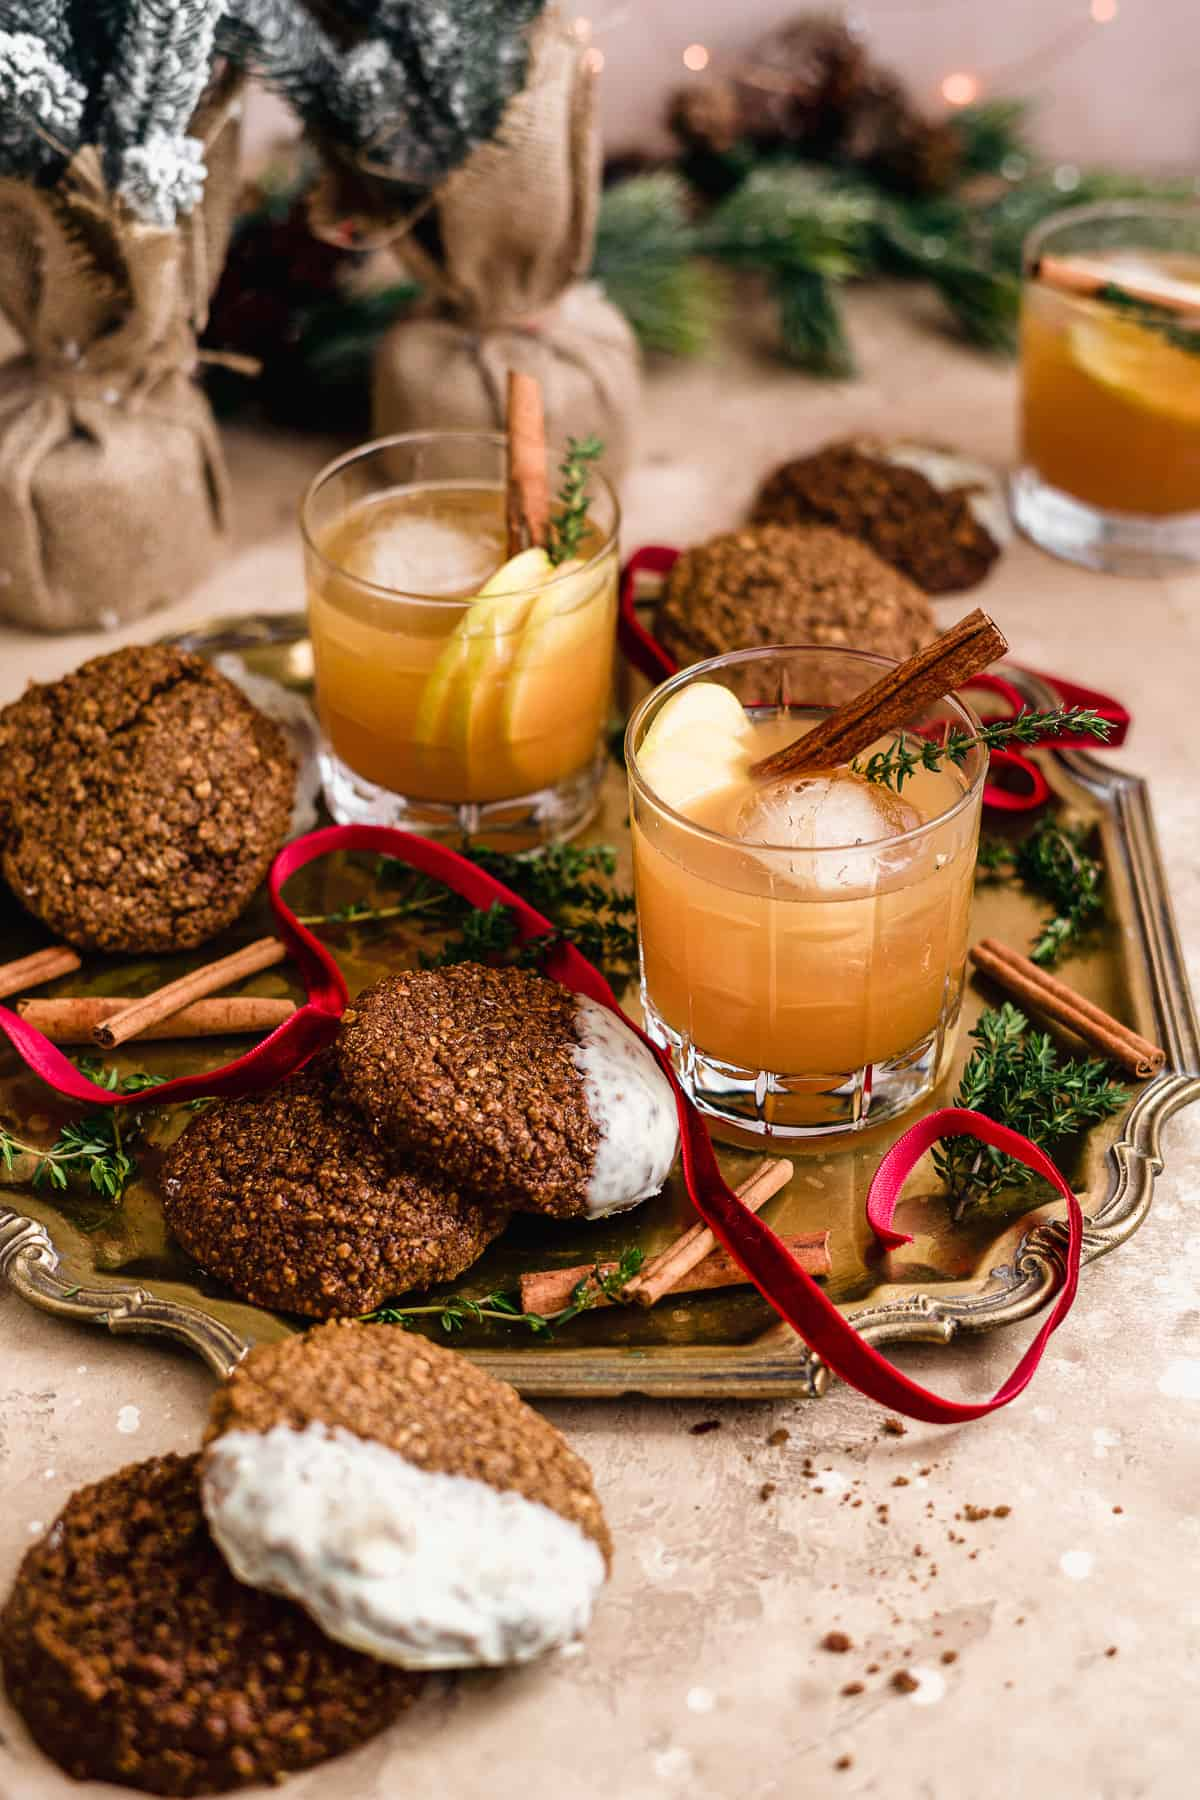 Two Smoked Cinnamon Apple Cider Bourbon Smash Cocktails in cut crystal glasses on a gold tray with cinnamon stick garnish and assorted cookies to enjoy while sipping!